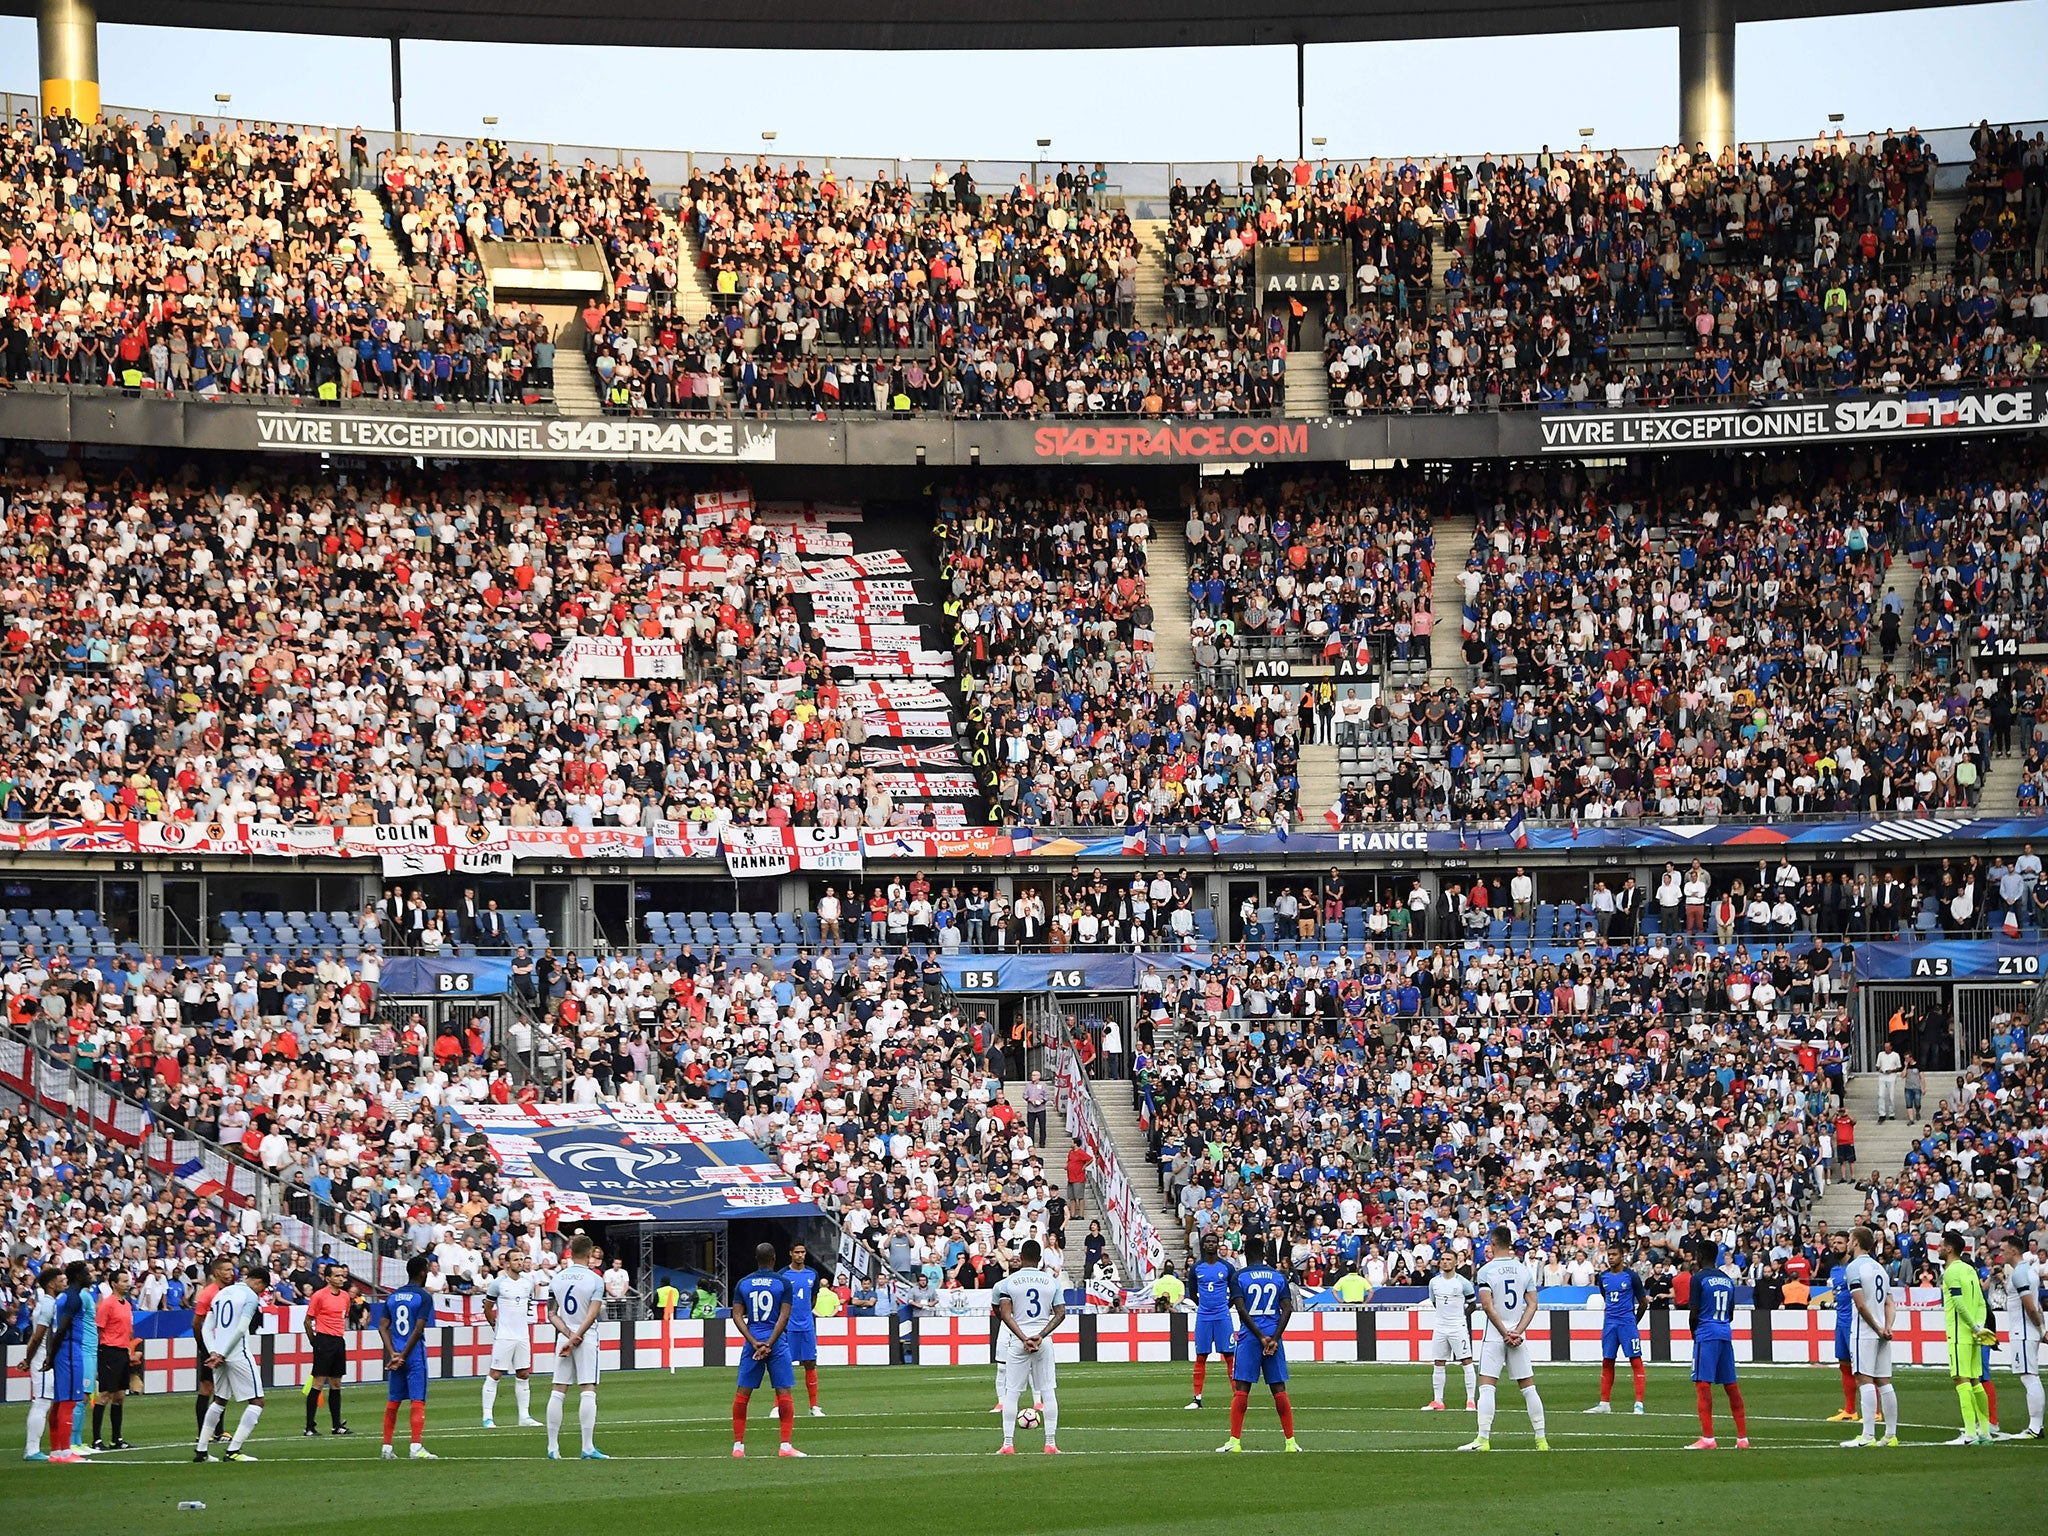 France vs England: Fans sing 'Don't Look Back In Anger' to remember Manchester and London attack victims